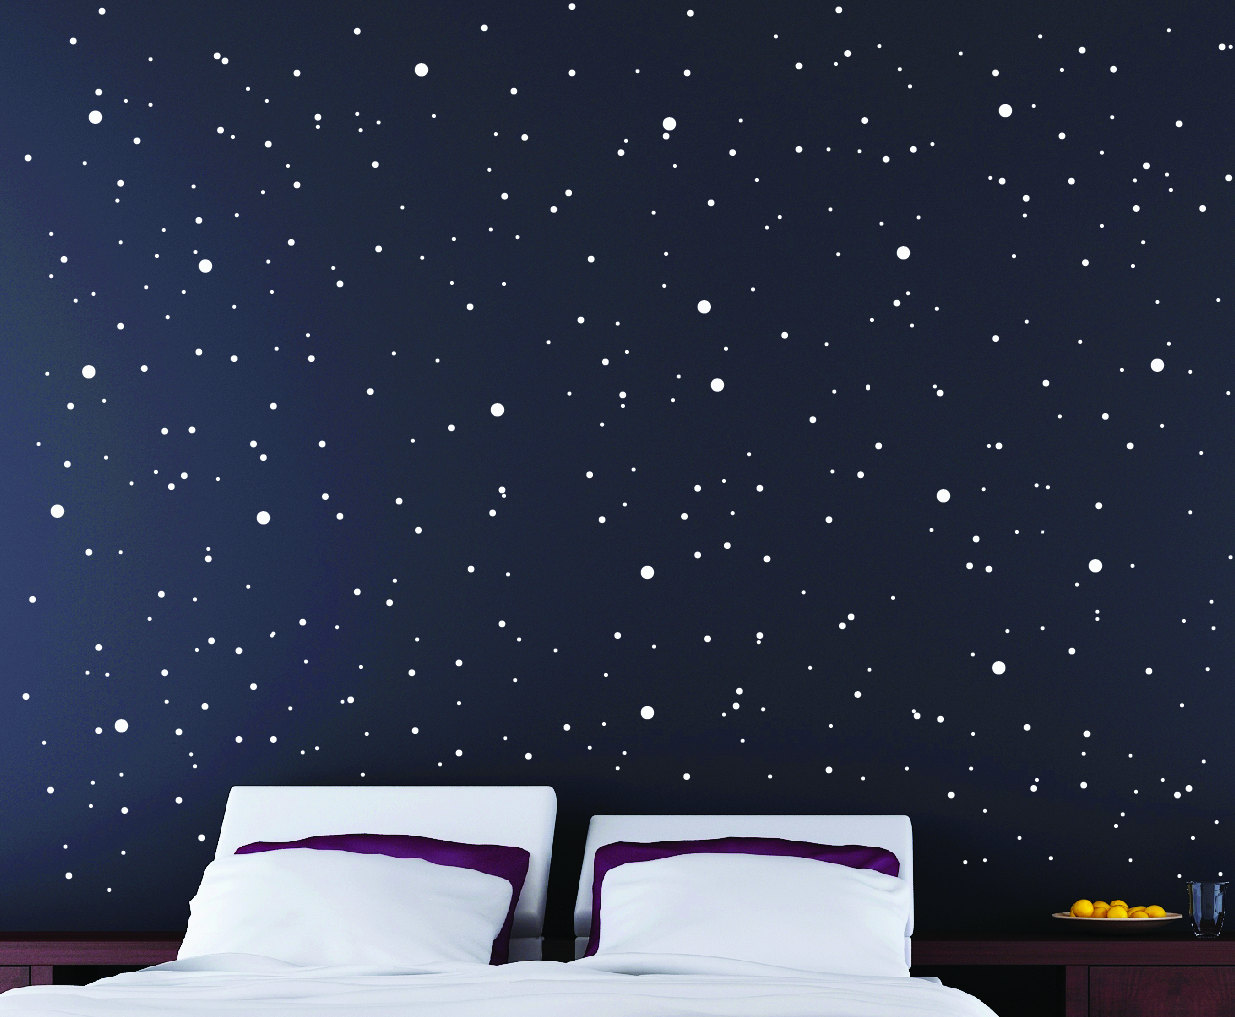 Starry Sky Wall Pack Star Stickers Star Wall Sticker